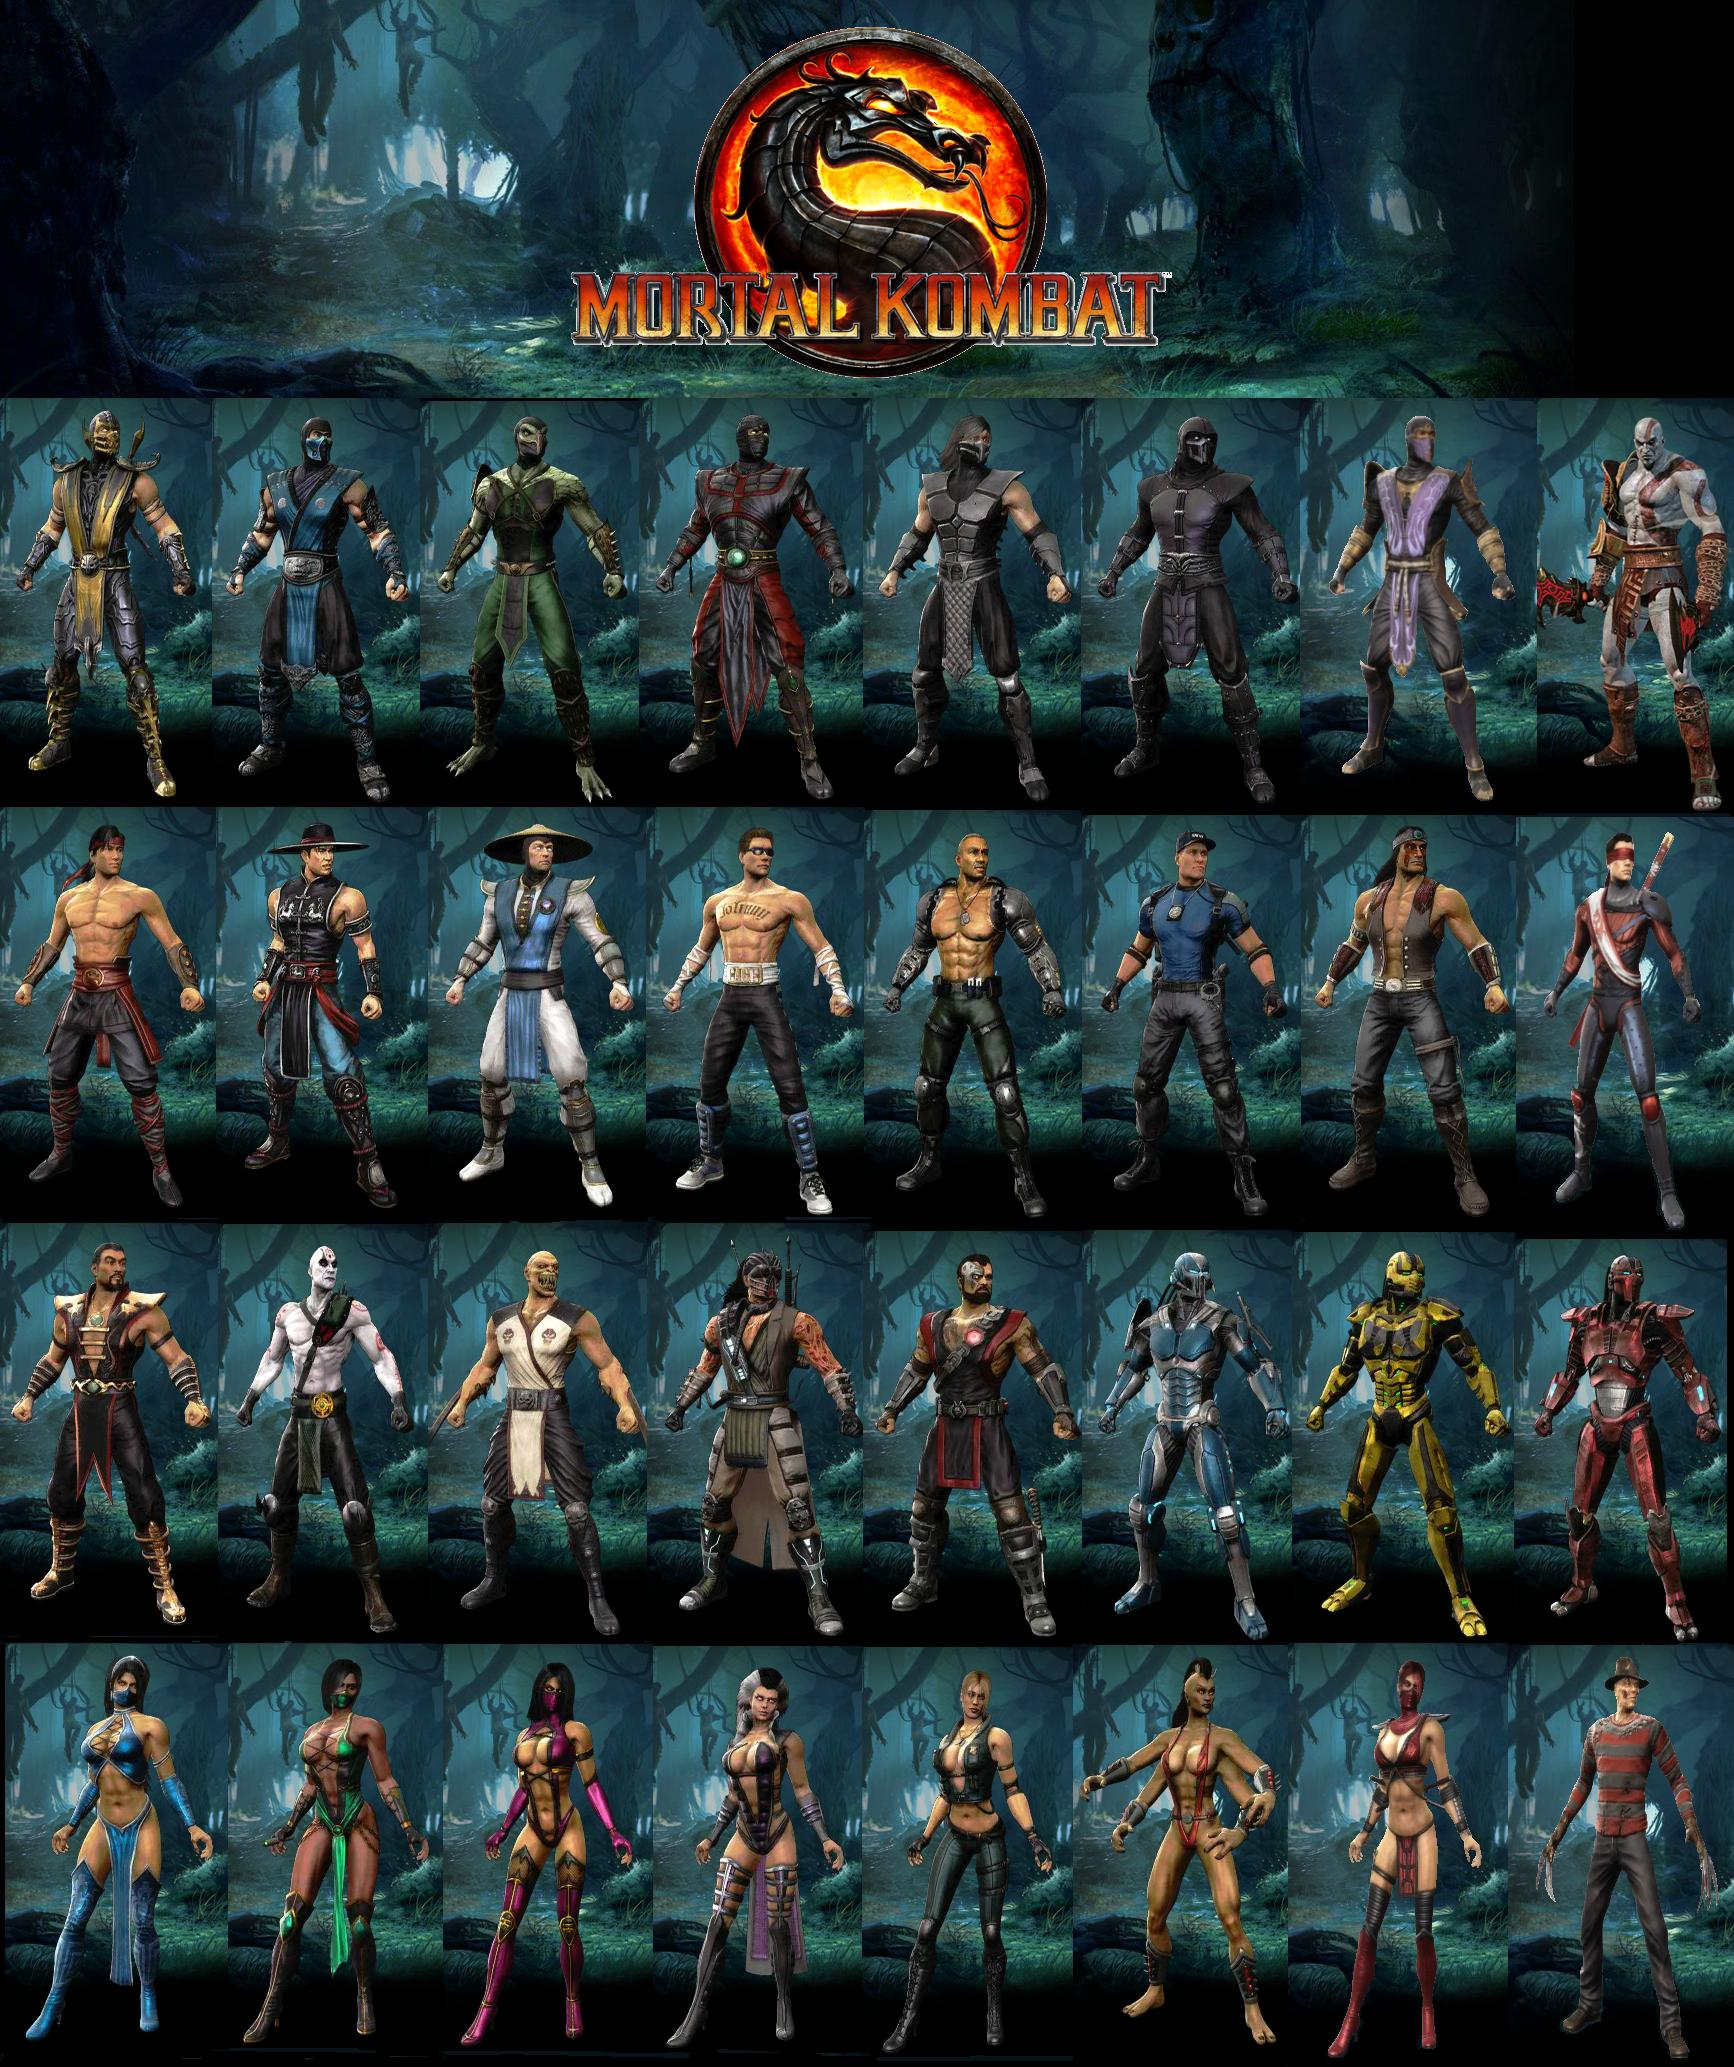 List of characters in the Mortal Kombat series - Neoseeker All mortal kombat characters and their pictures